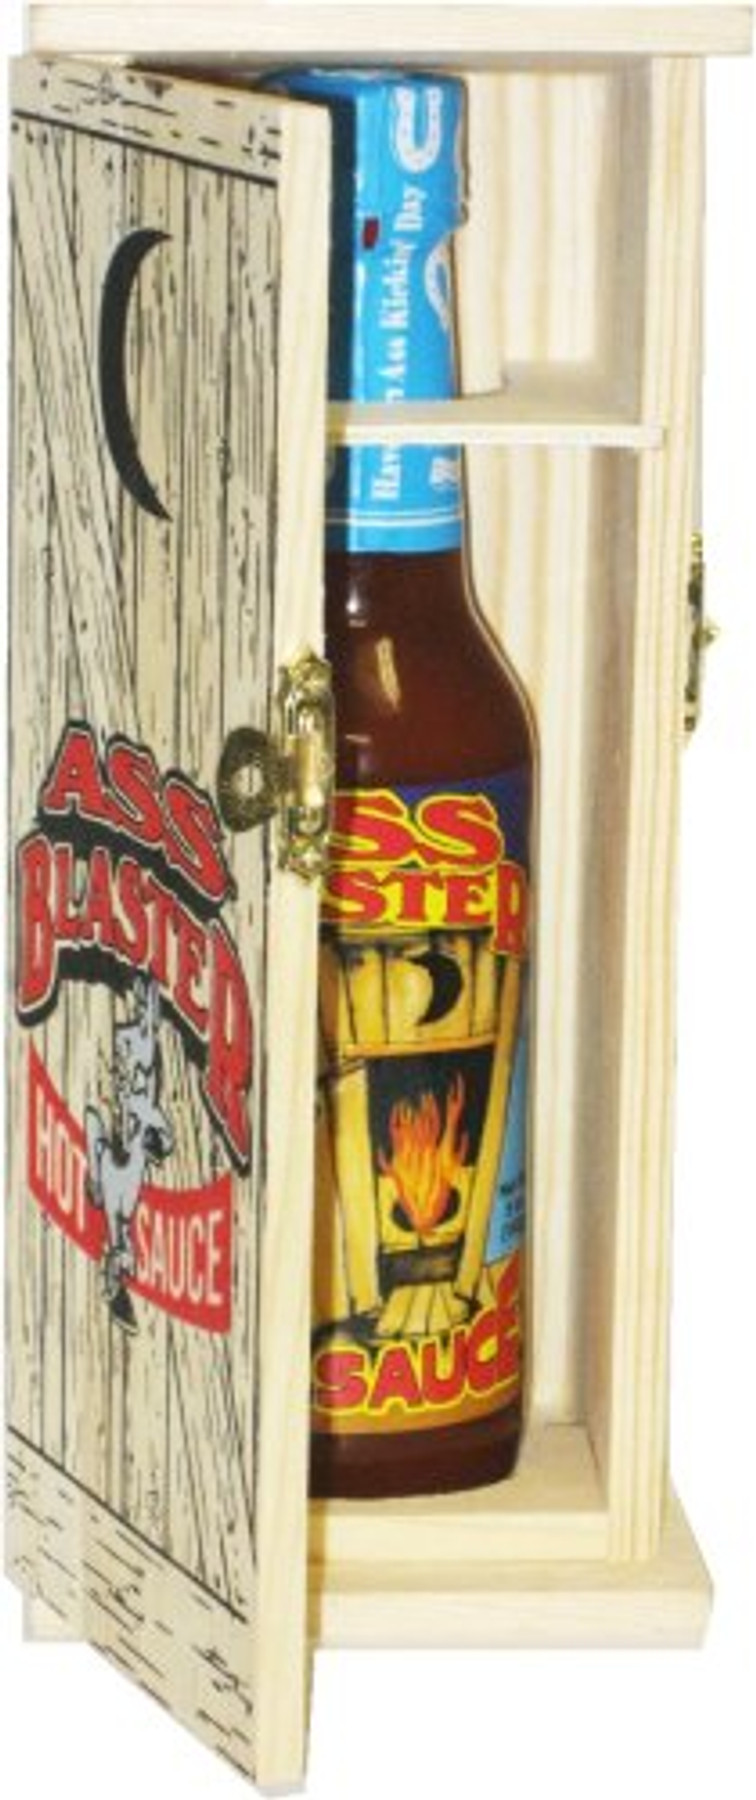 Ass Blaster Hot Sauce with Outhouse